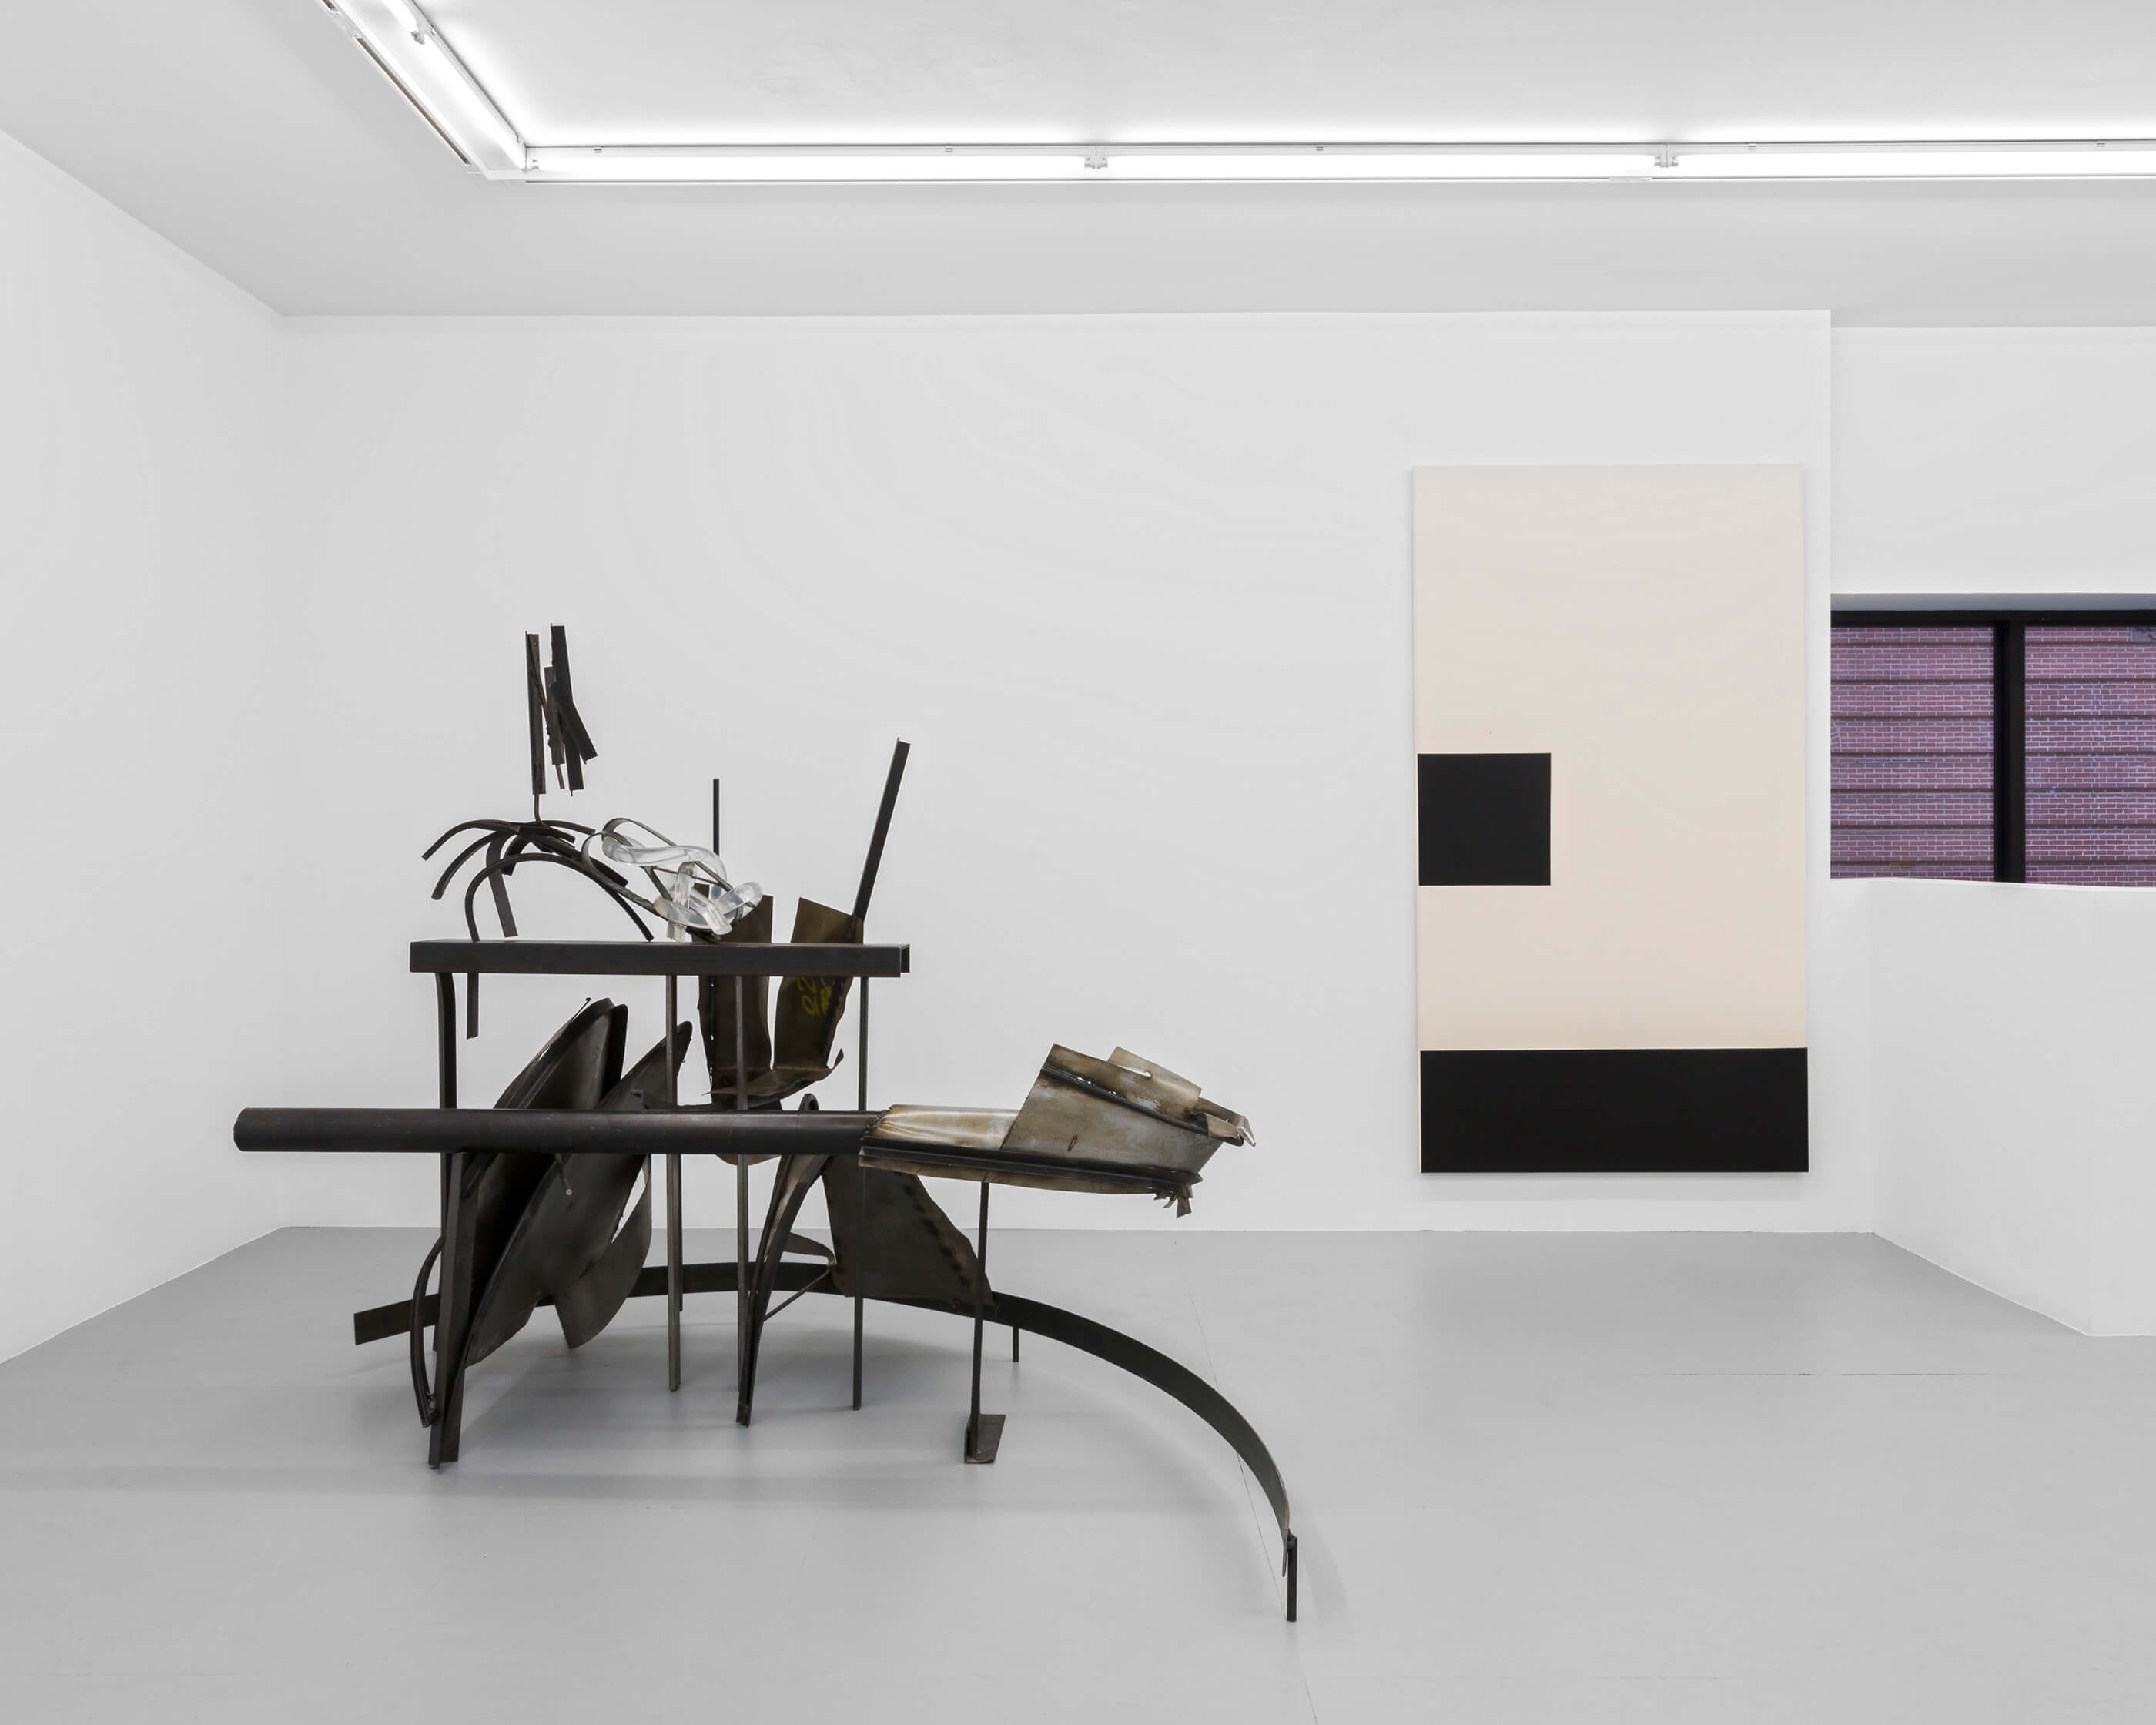 Levels (with steel and rubber crawler, clear), Steel, urethane rubber, 48 x 72 x 56 inches, 2014